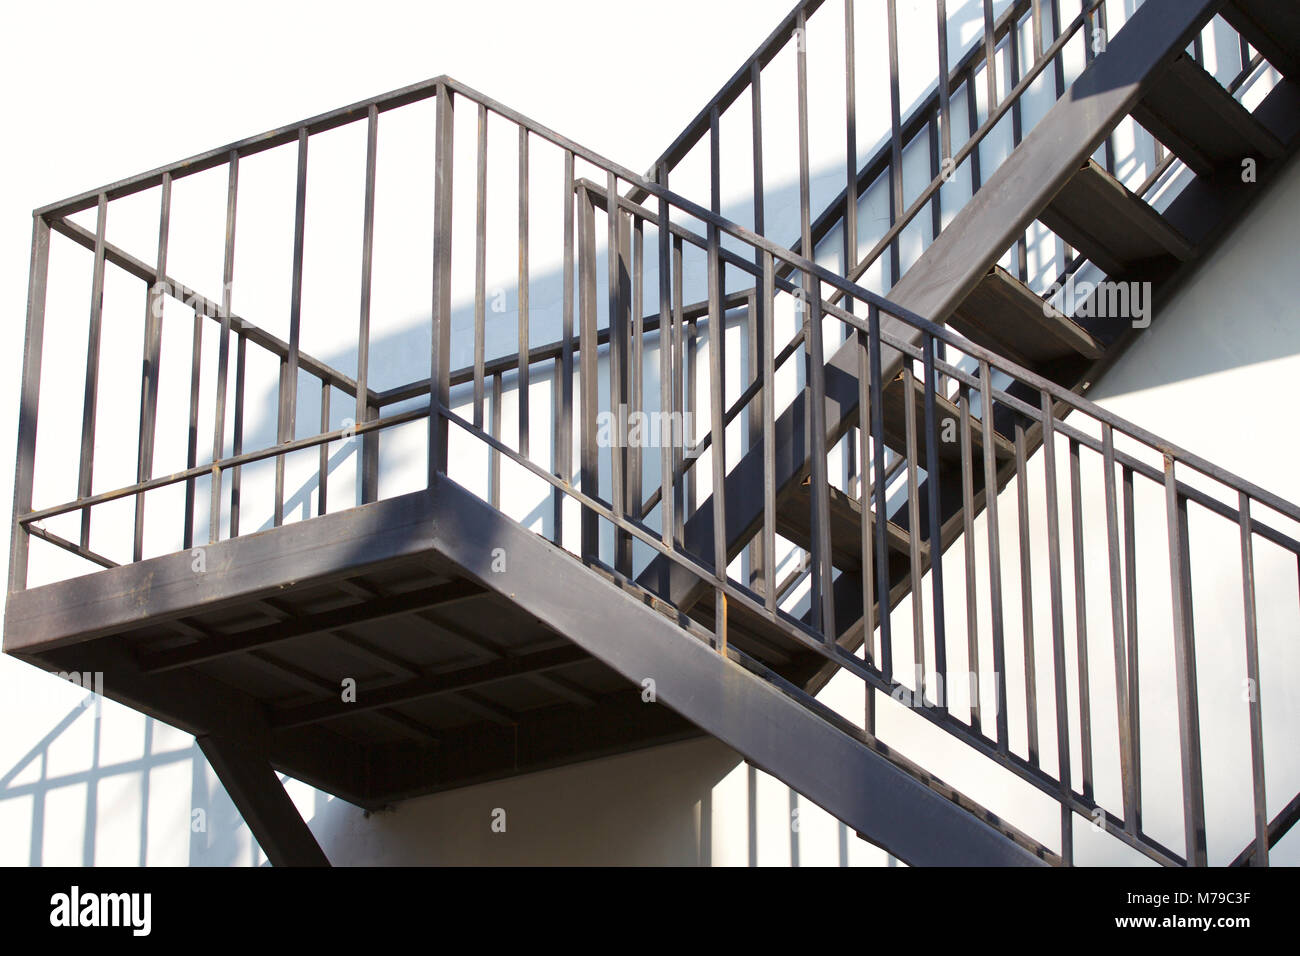 Metal Structure Of A Metal Staircase Outside A Multistory Building   Stock  Image